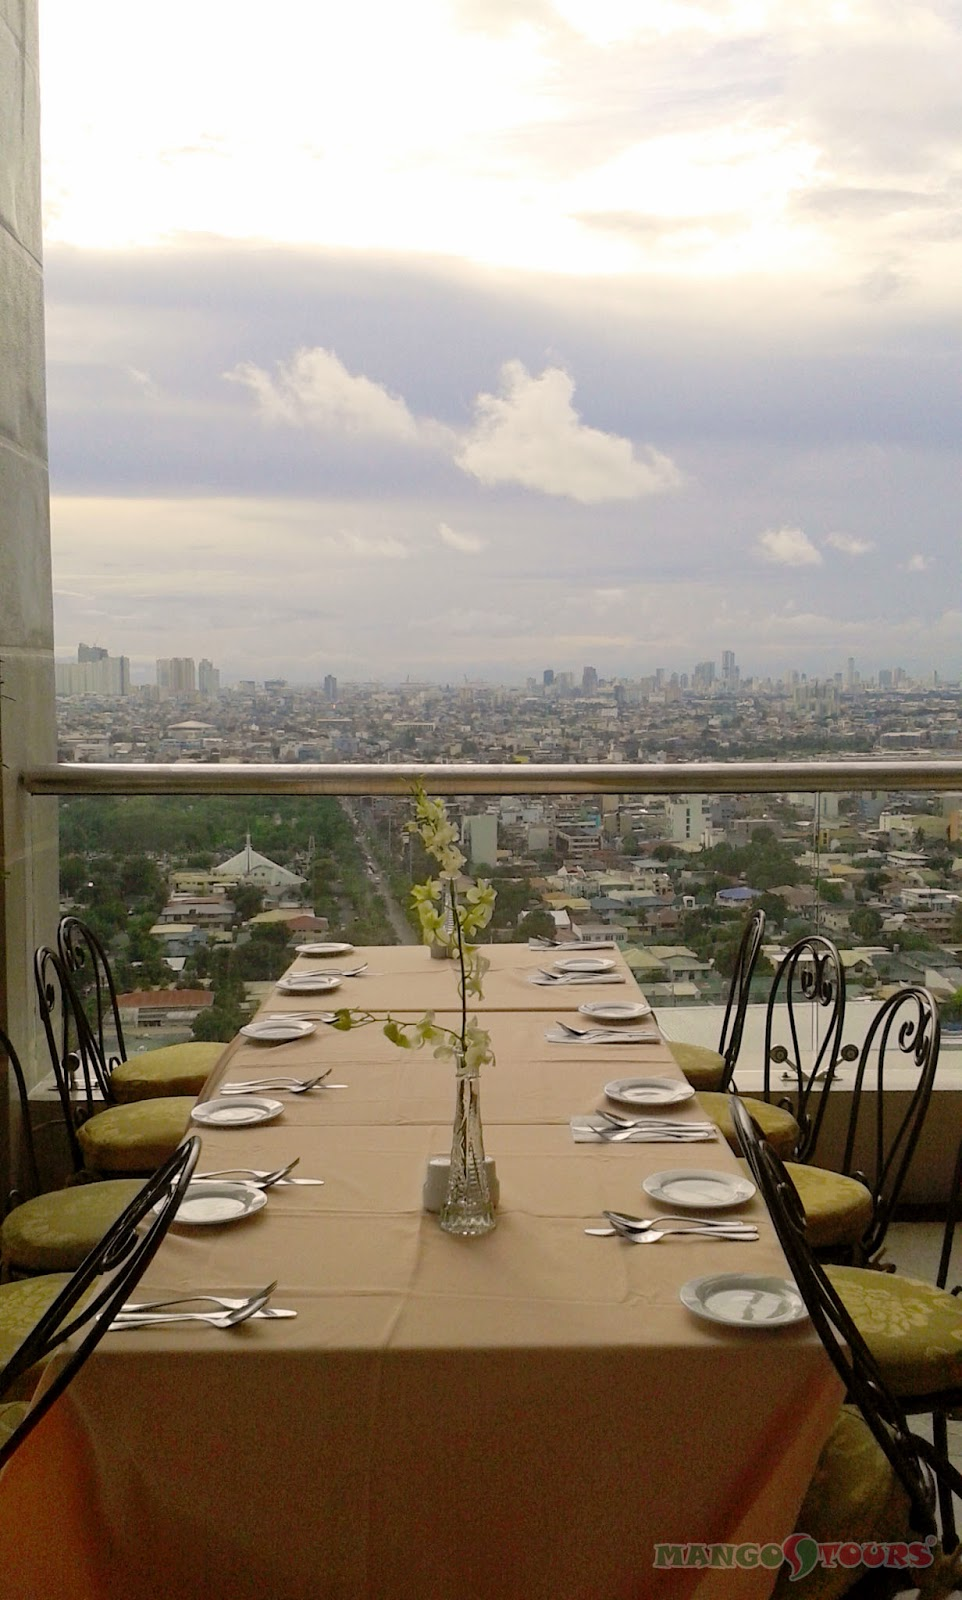 City Garden Hotel Makati roof deck dining cityscape